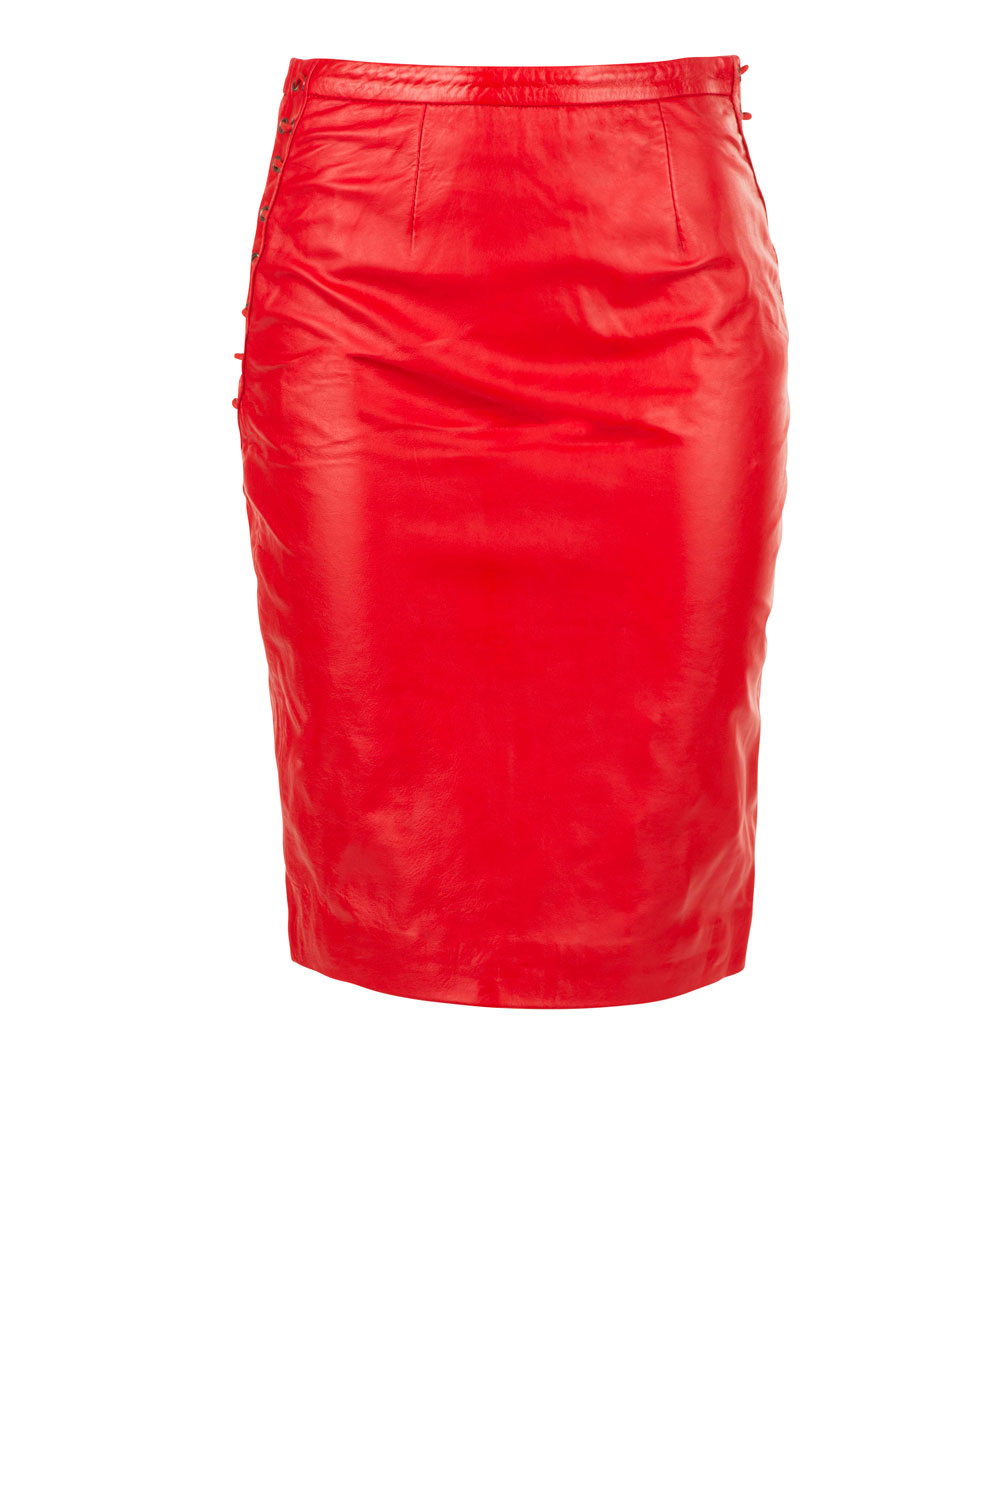 7907d0431fff25 Leather pencil skirt Maisy